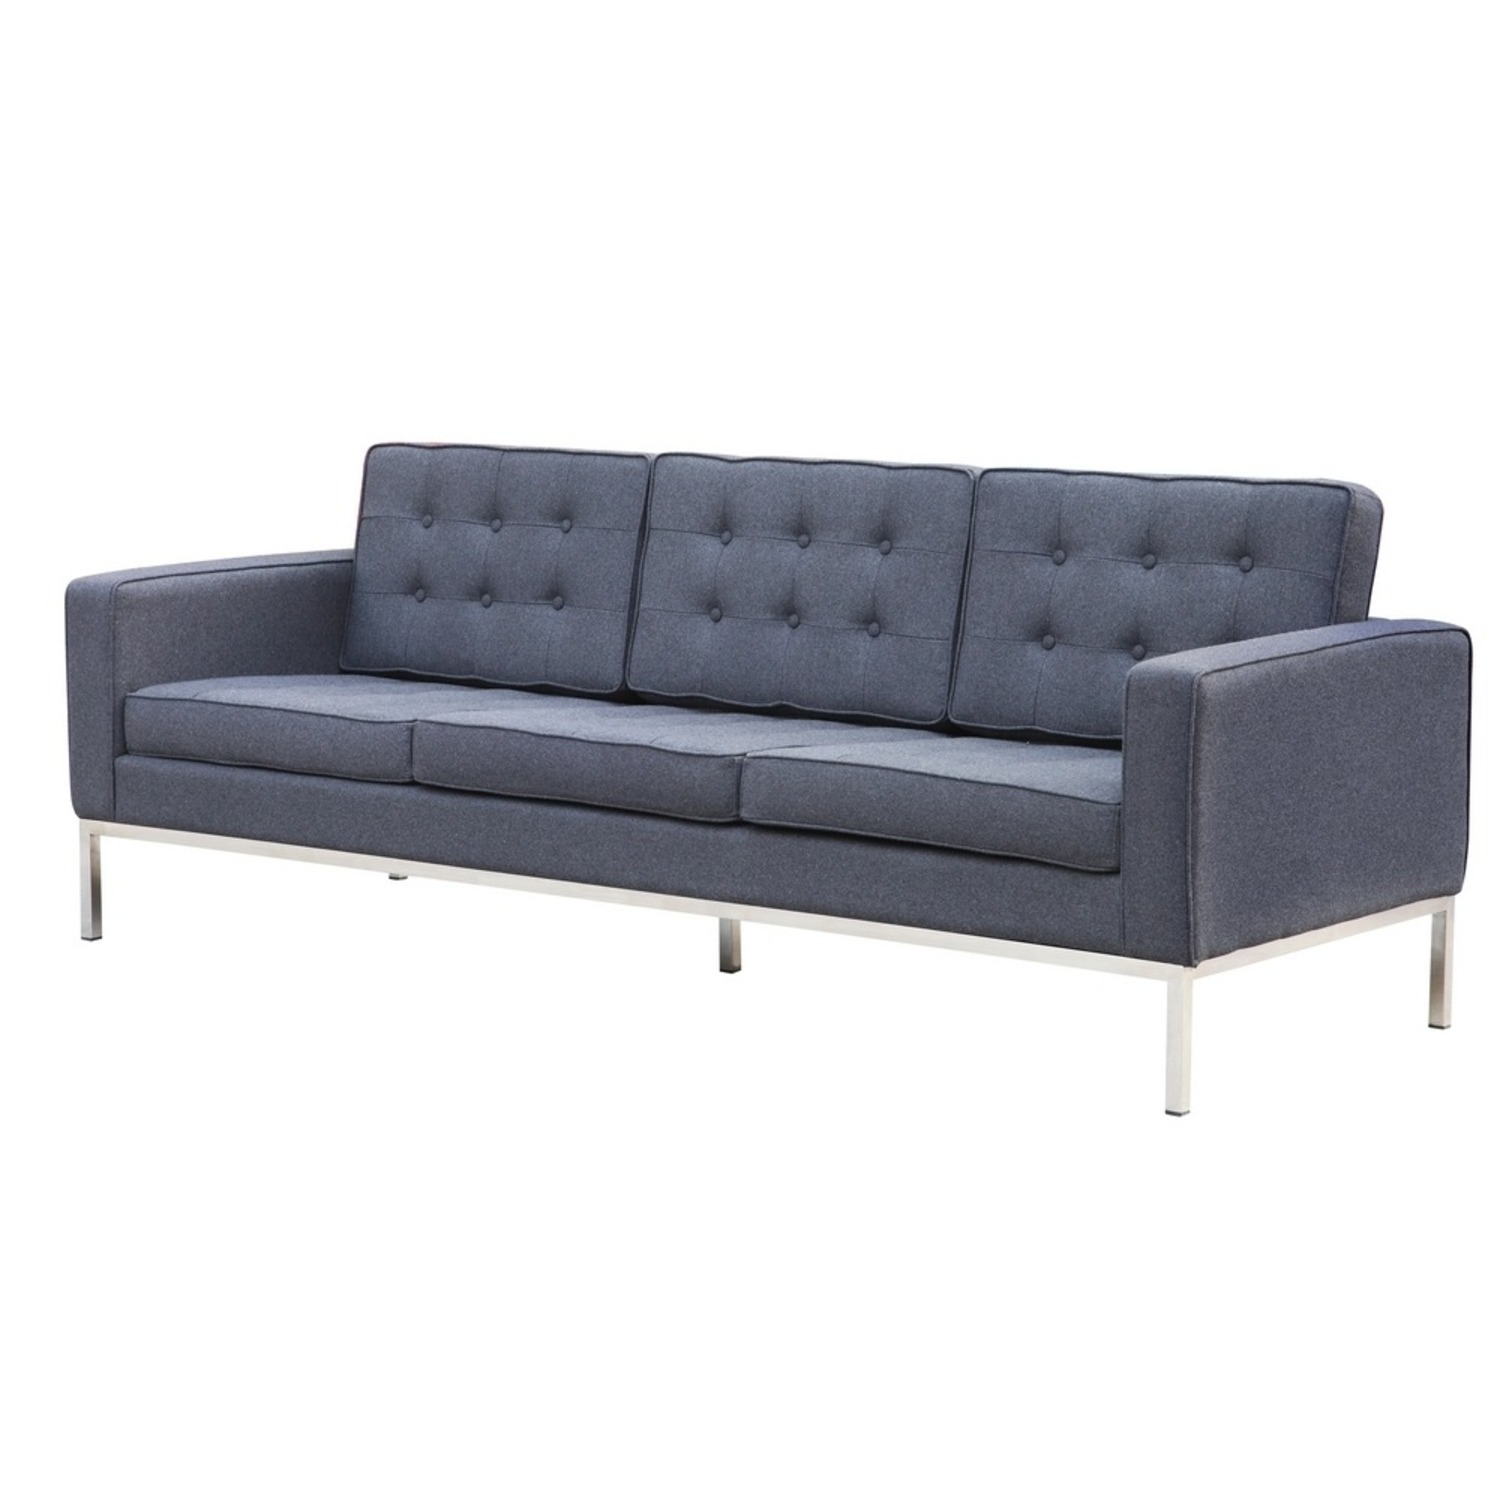 Contemporary Sofa In Gray Wool Fabric - image-4